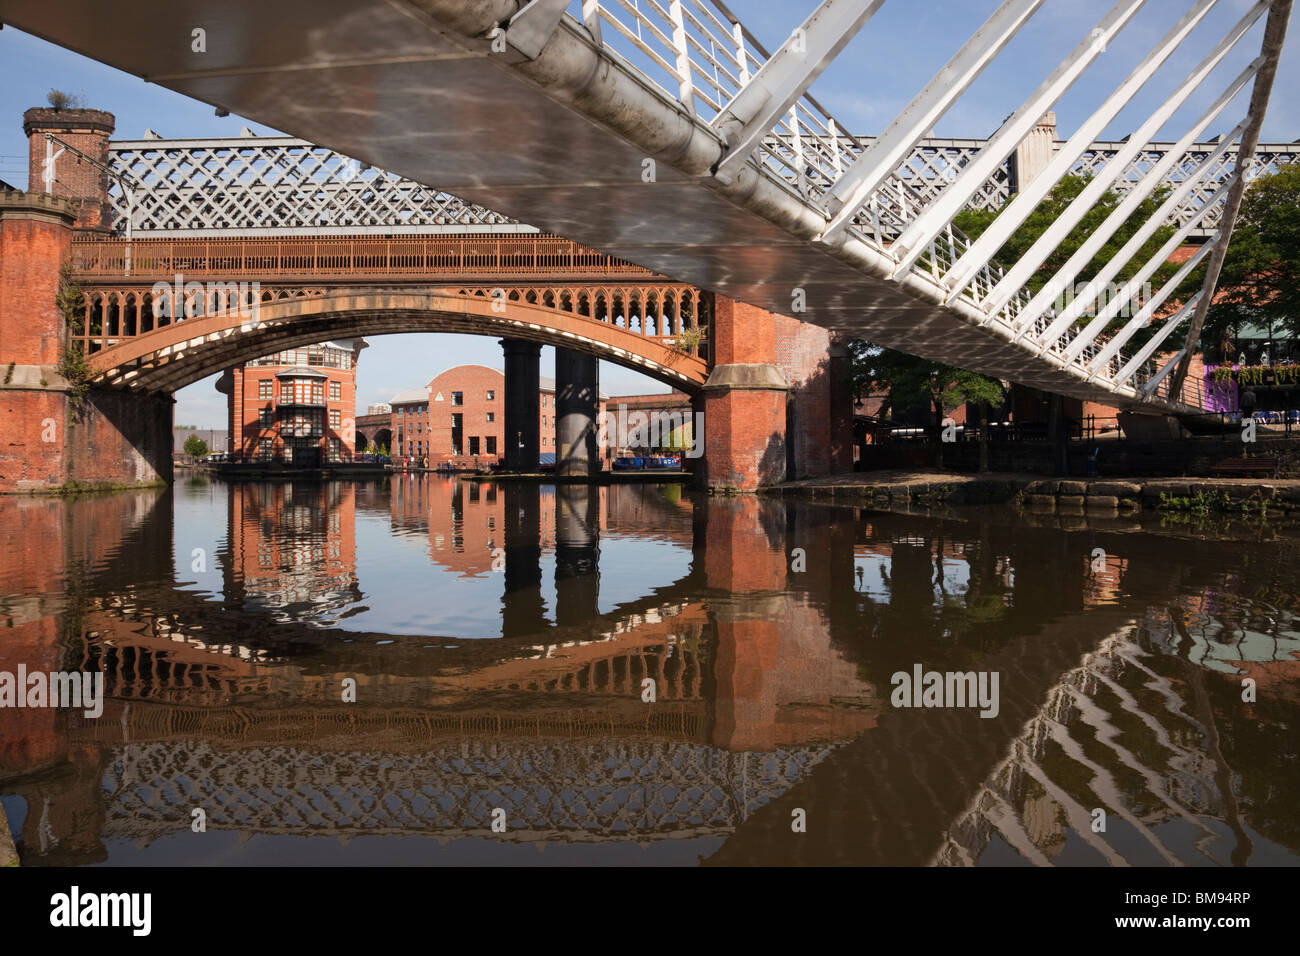 Merchant's Bridge and old railway bridge over Bridgewater Canal basin in Castlefield Urban Heritage Park conservation - Stock Image